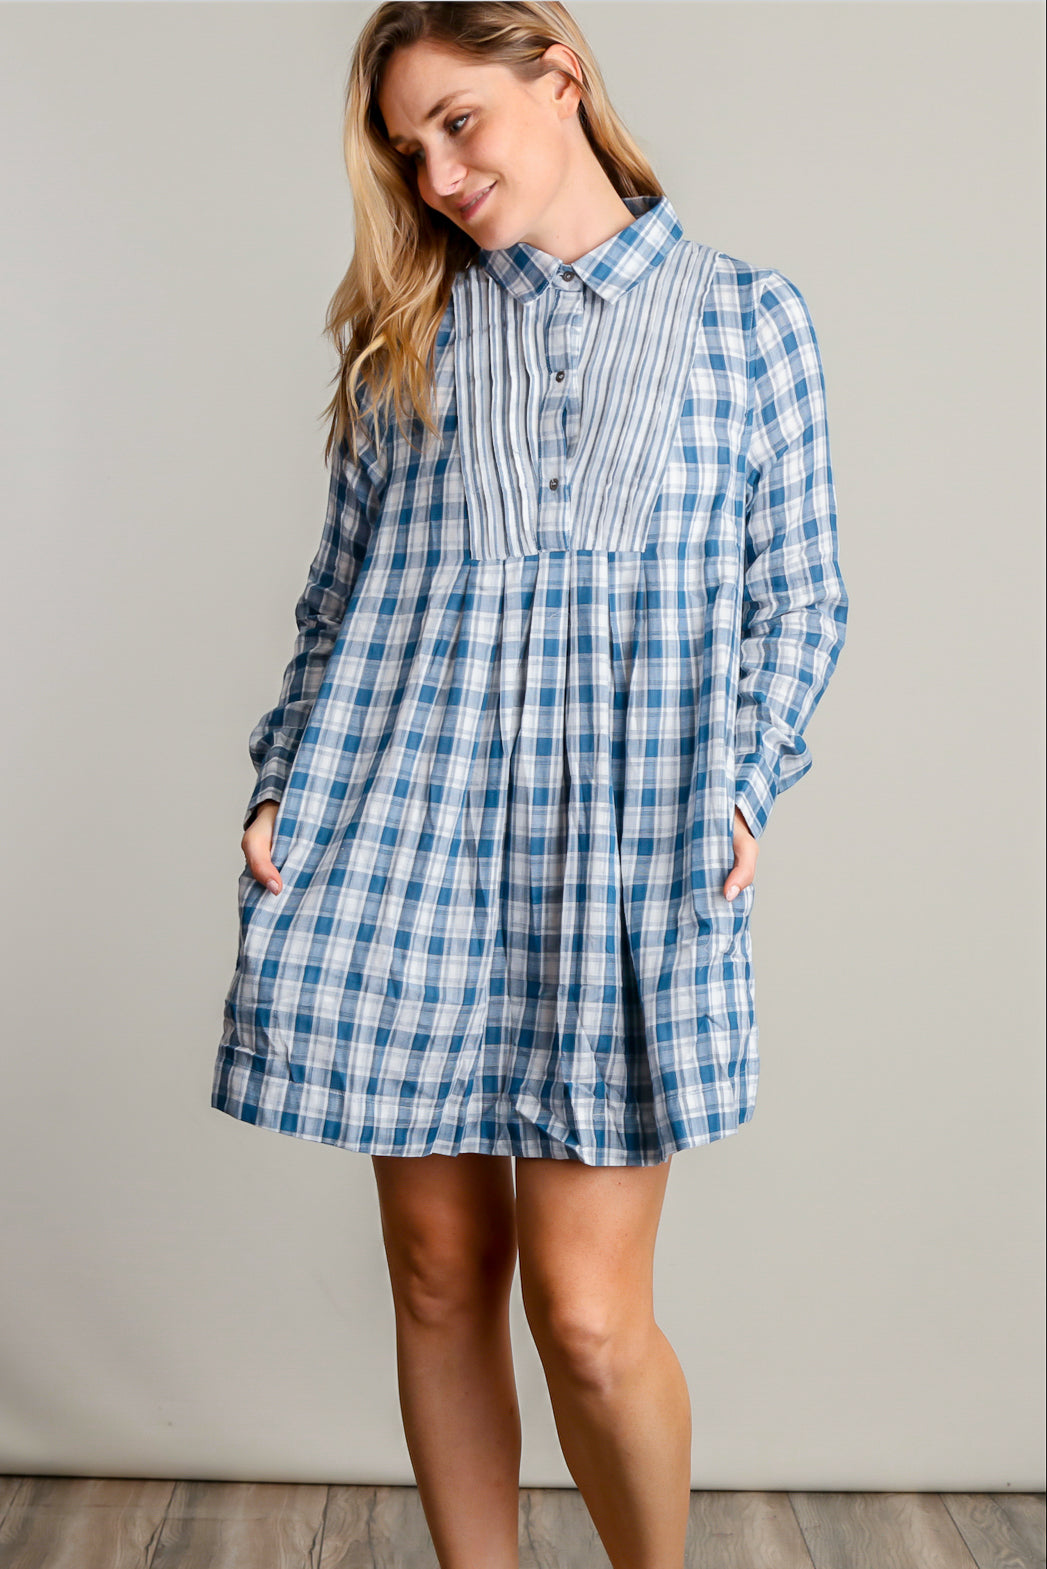 Blue Plaid Pocketed Dress